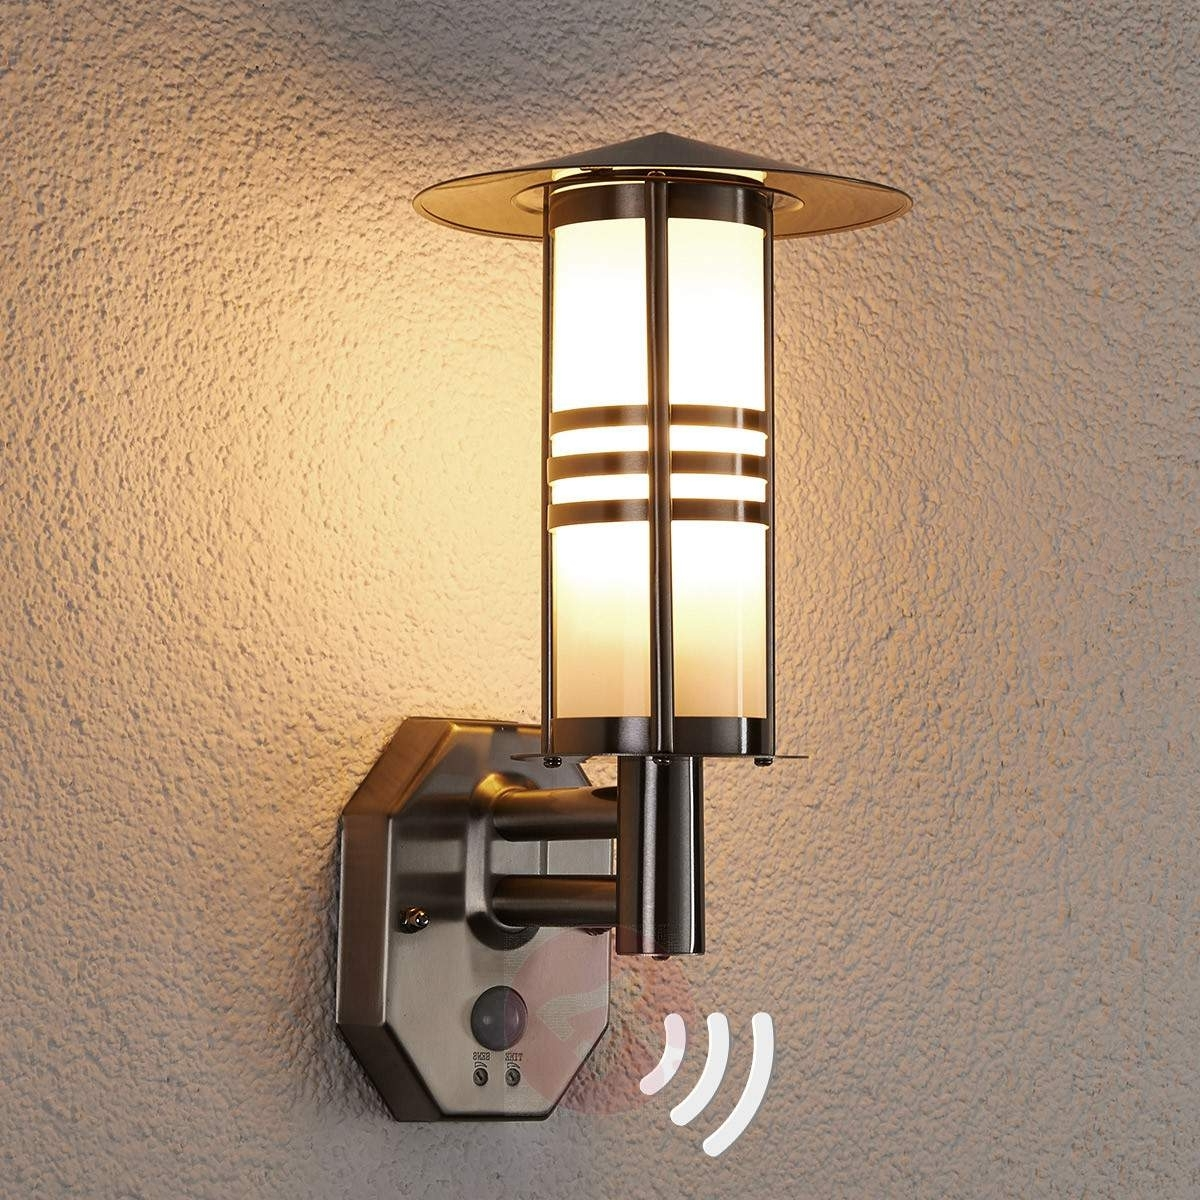 Most Recent Eglo Lighting Sidney Outdoor Wall Lights With Motion Sensor Intended For Furniture : Wall Lights Outside Motion Sensor Lighting Product (View 16 of 20)